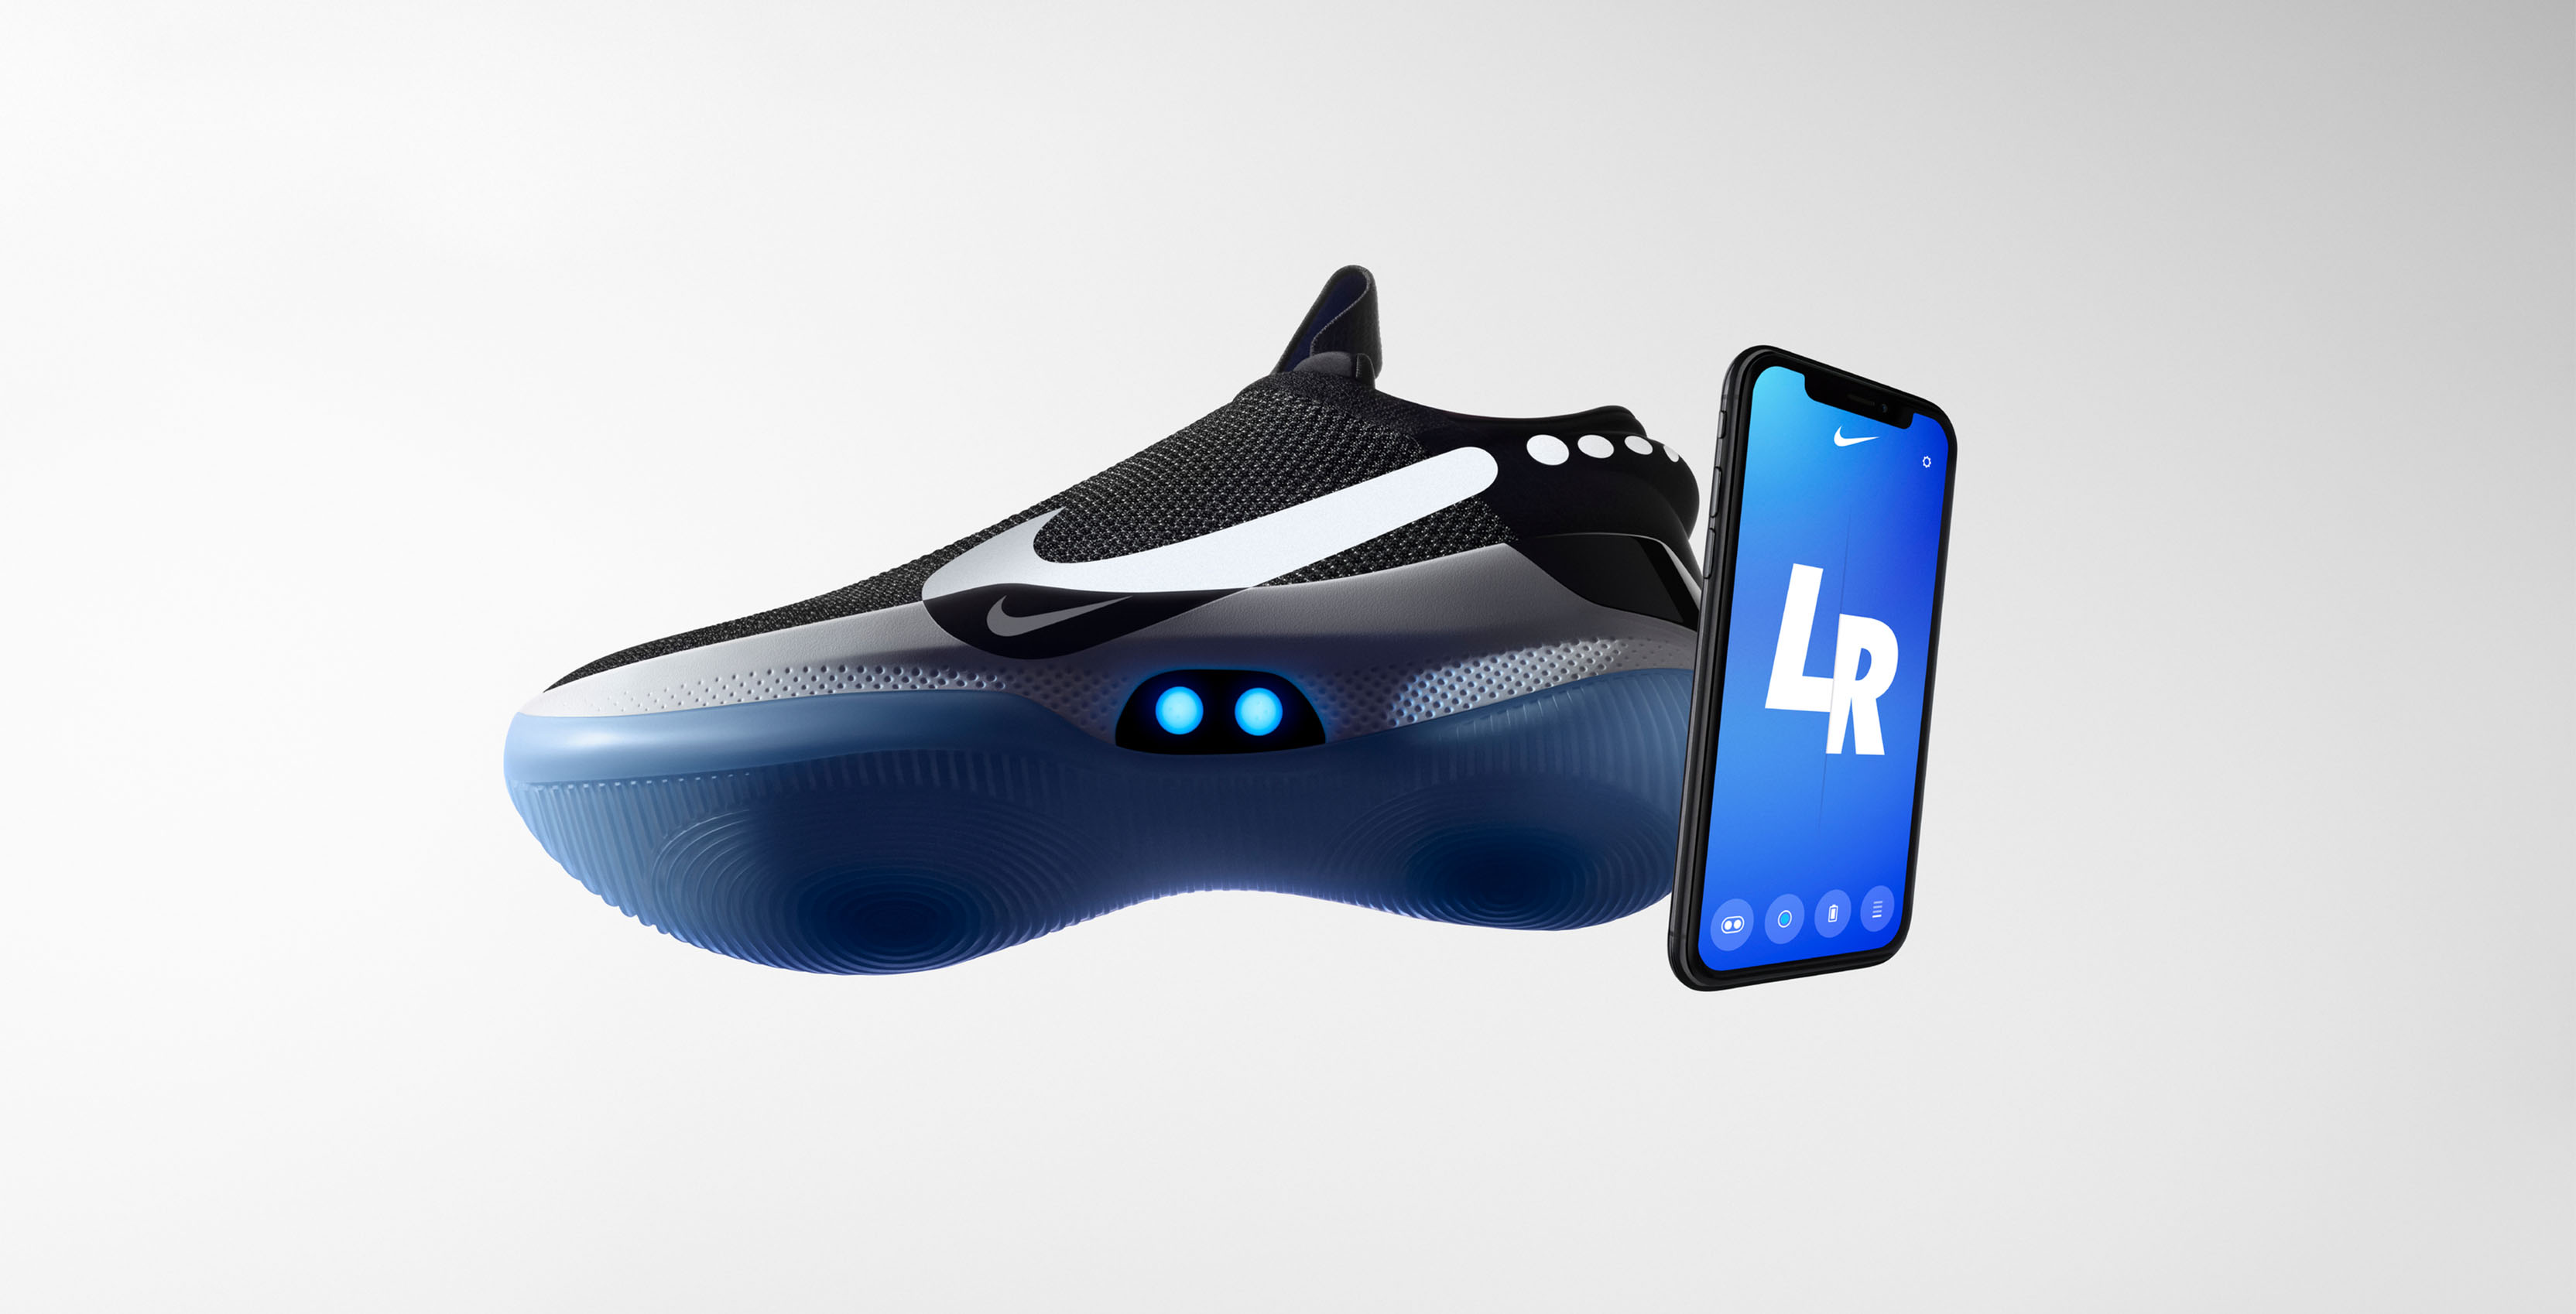 Nike Adapt BB and companion app